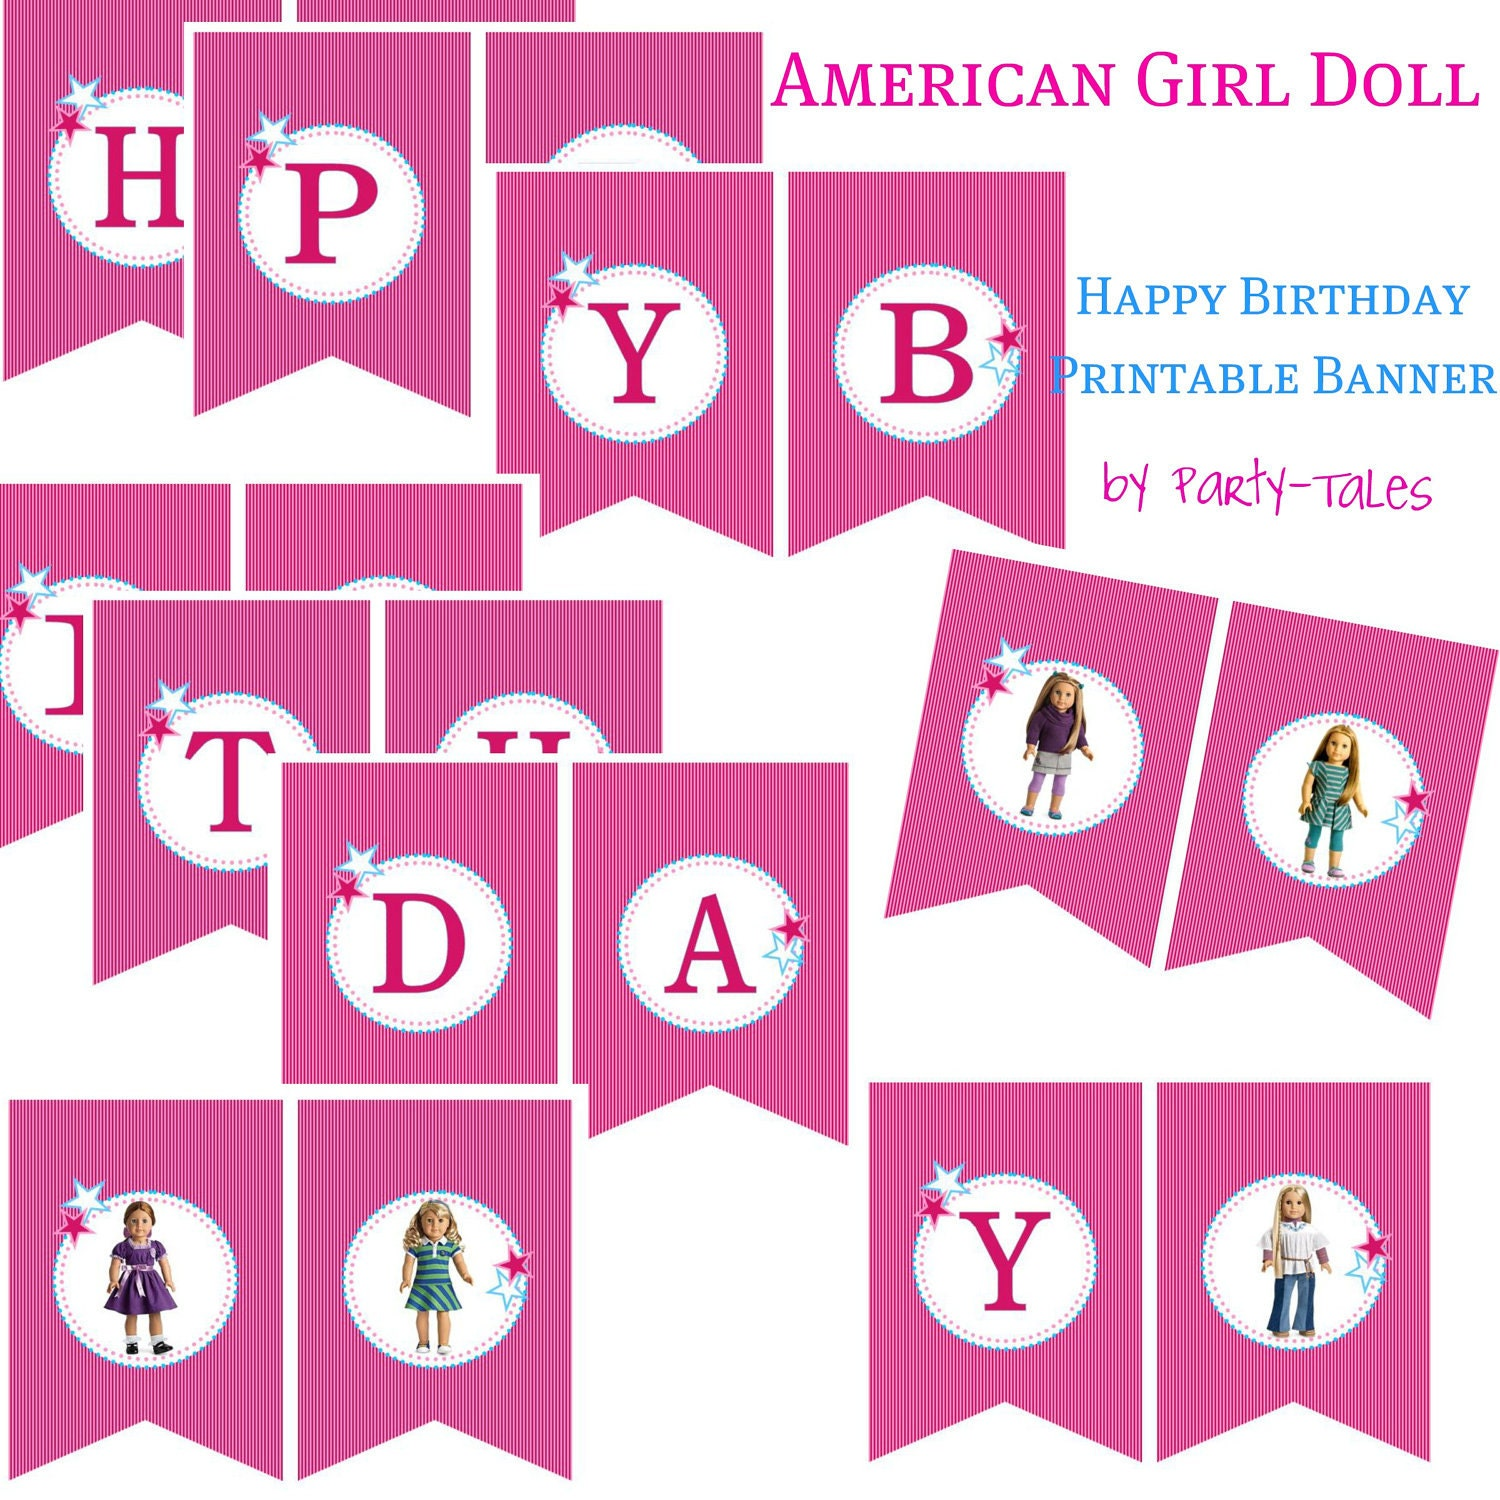 American Girl Doll Printable Birthday Party Banner By